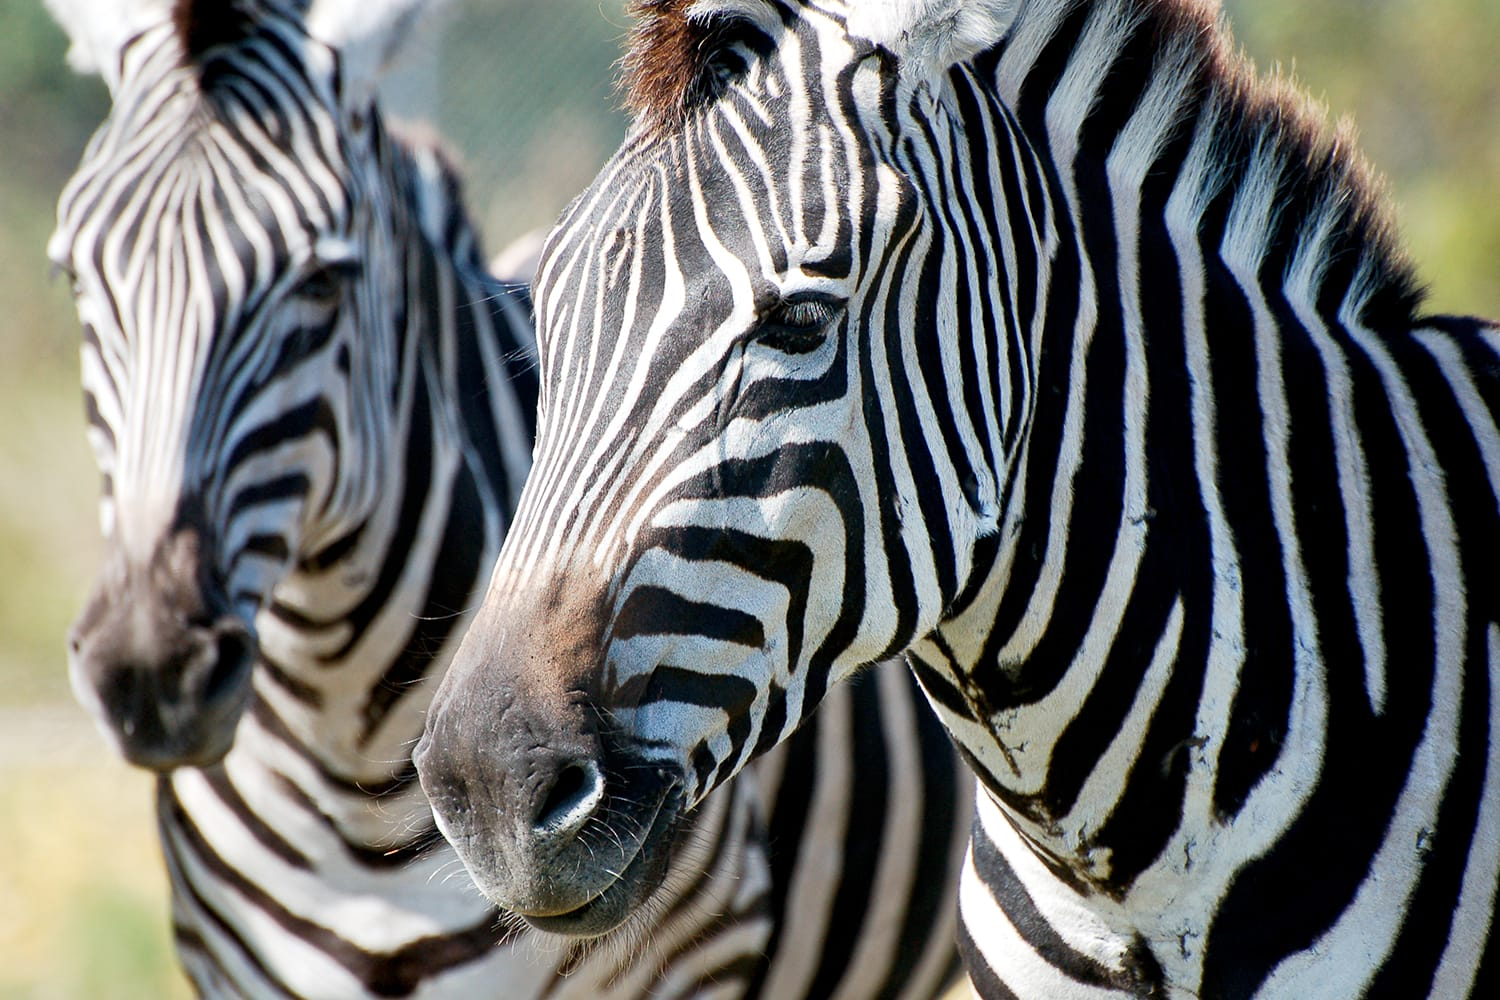 Zebras at Lion Country Park in Florida, USA